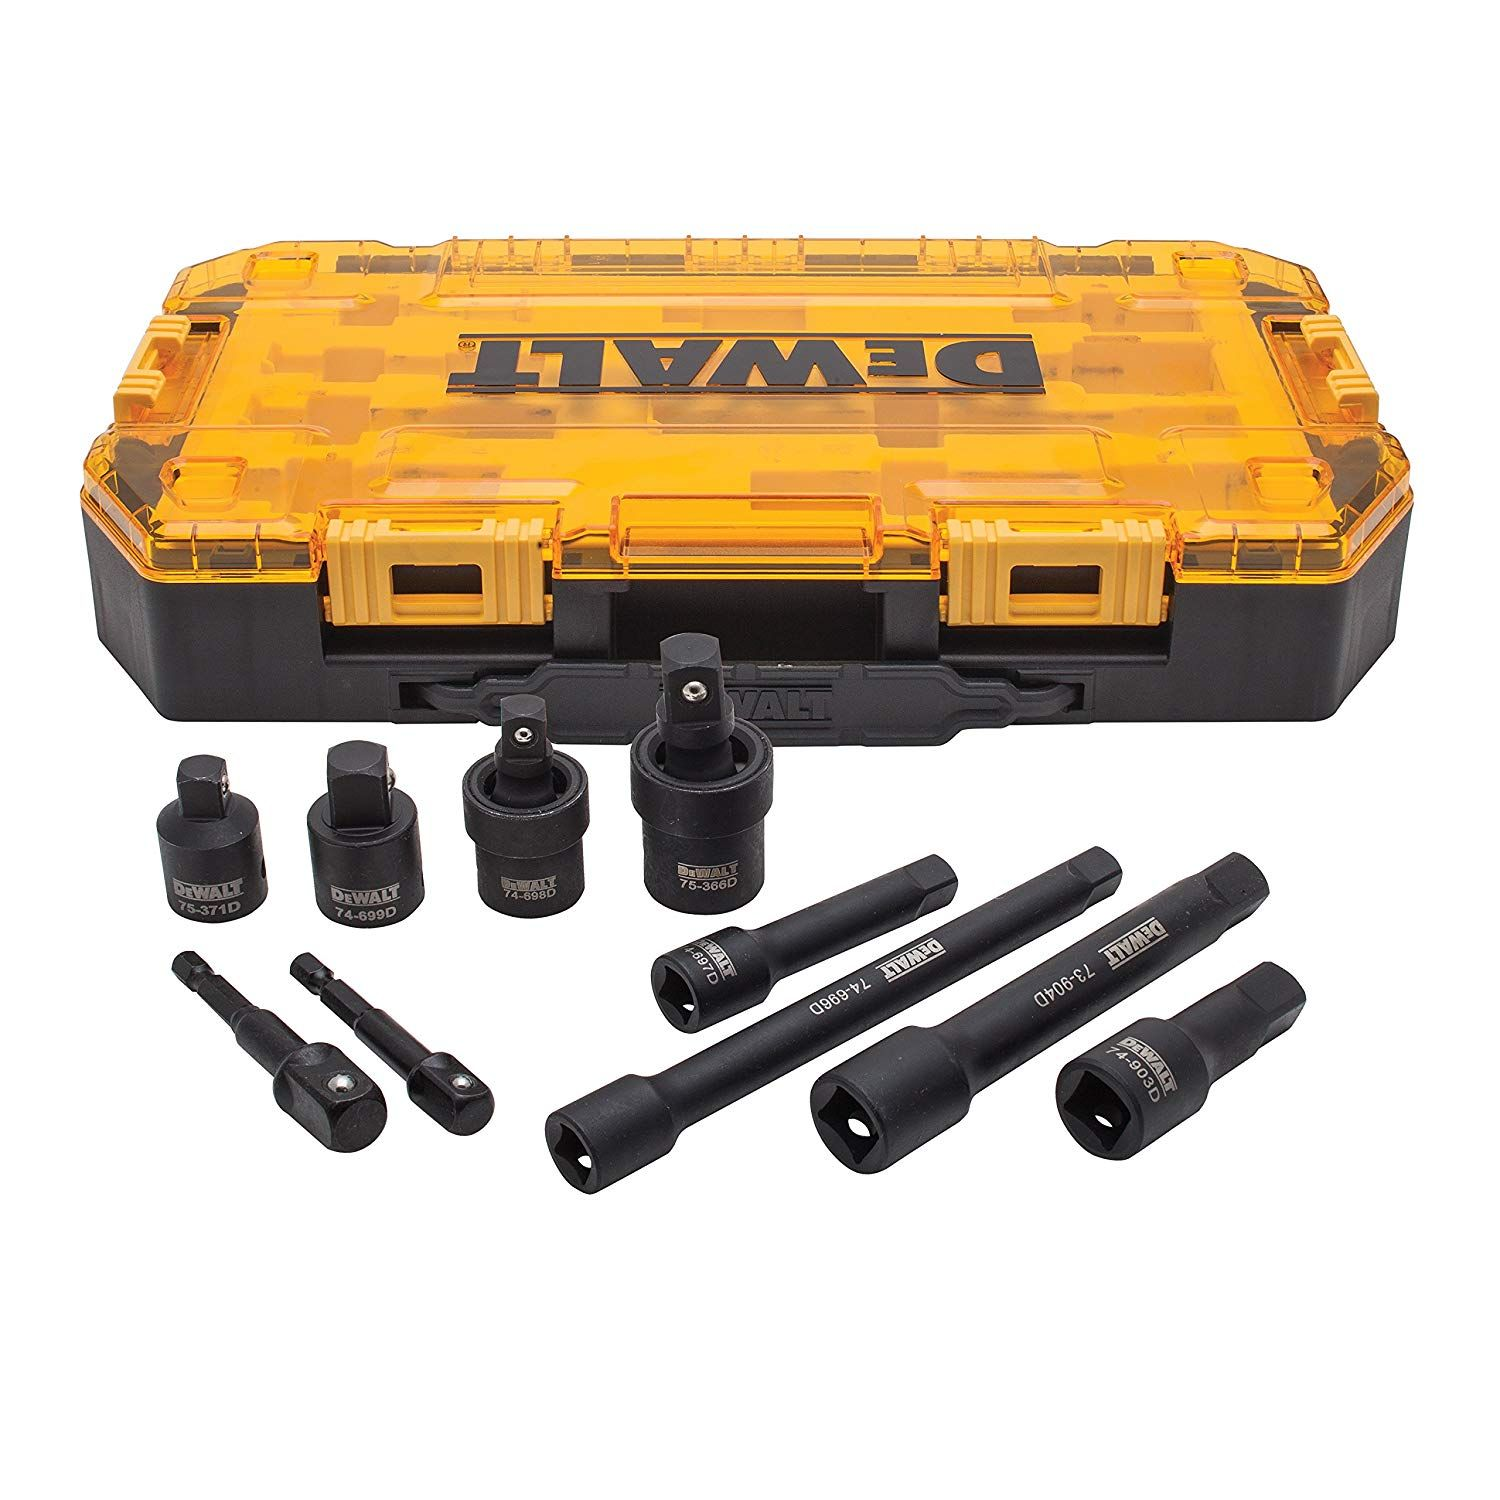 Dewalt Impact Driver Socket Adapter Set 10 Piece 3 8 1 2 Drive Metric Dwmt74741 In 2020 Dewalt Impact Sockets Socket Set